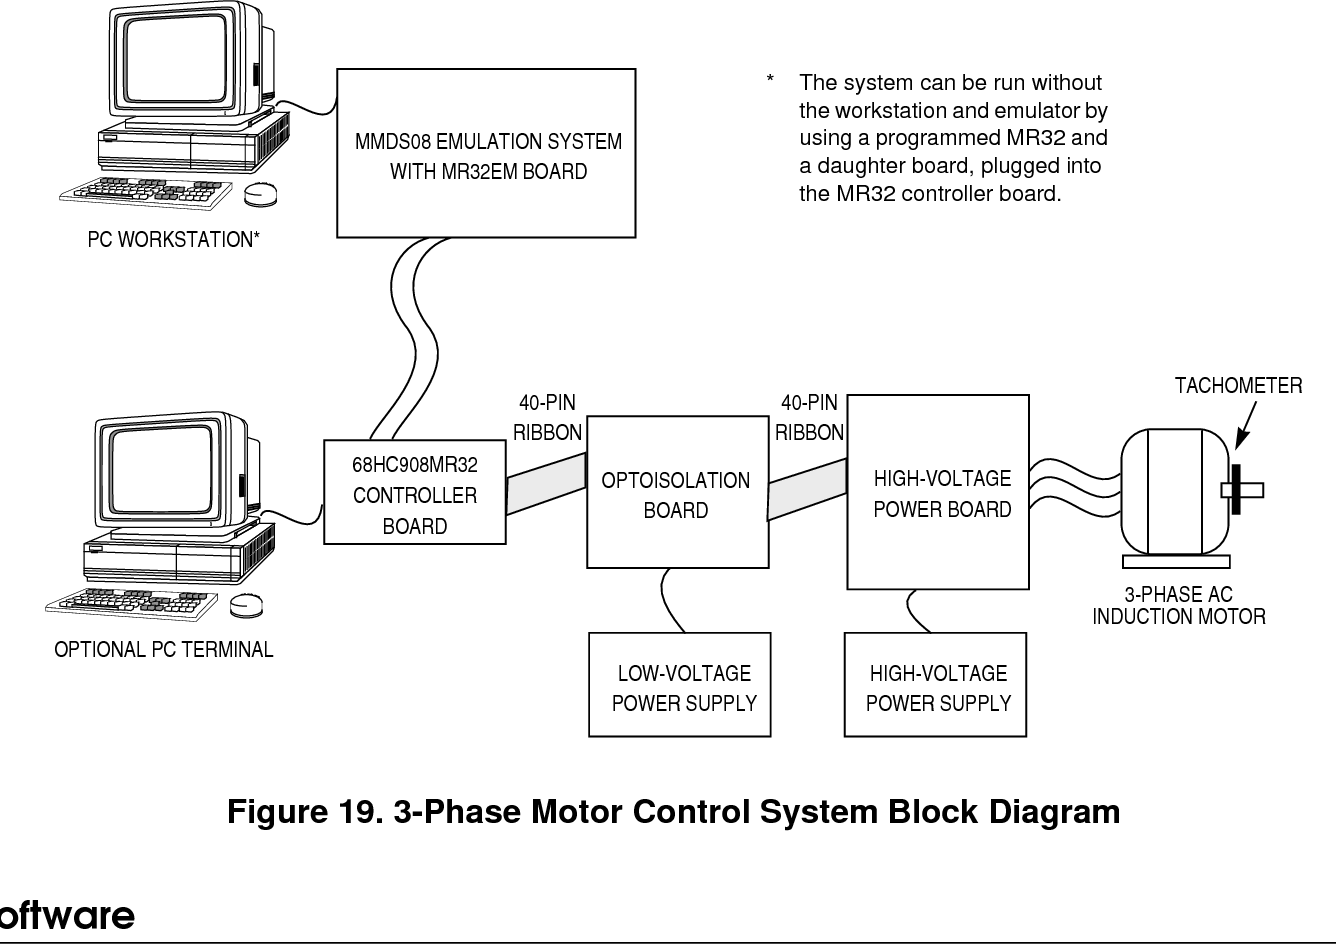 An1857 A 3 Phase Ac Induction Motor Control System Based On The Block Diagram For Mc68hc908mr32 Semantic Scholar